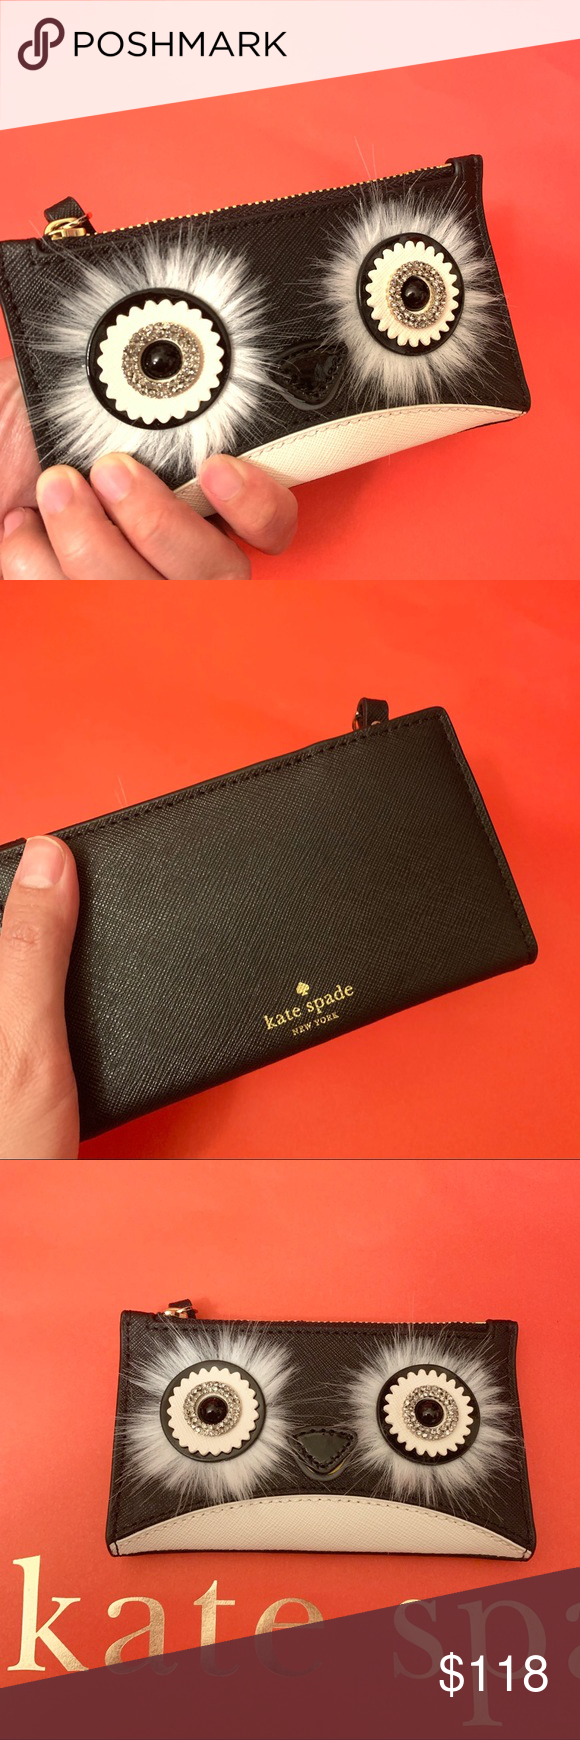 Kate Spade Dashing Beauty Mikey Penguin Wallet